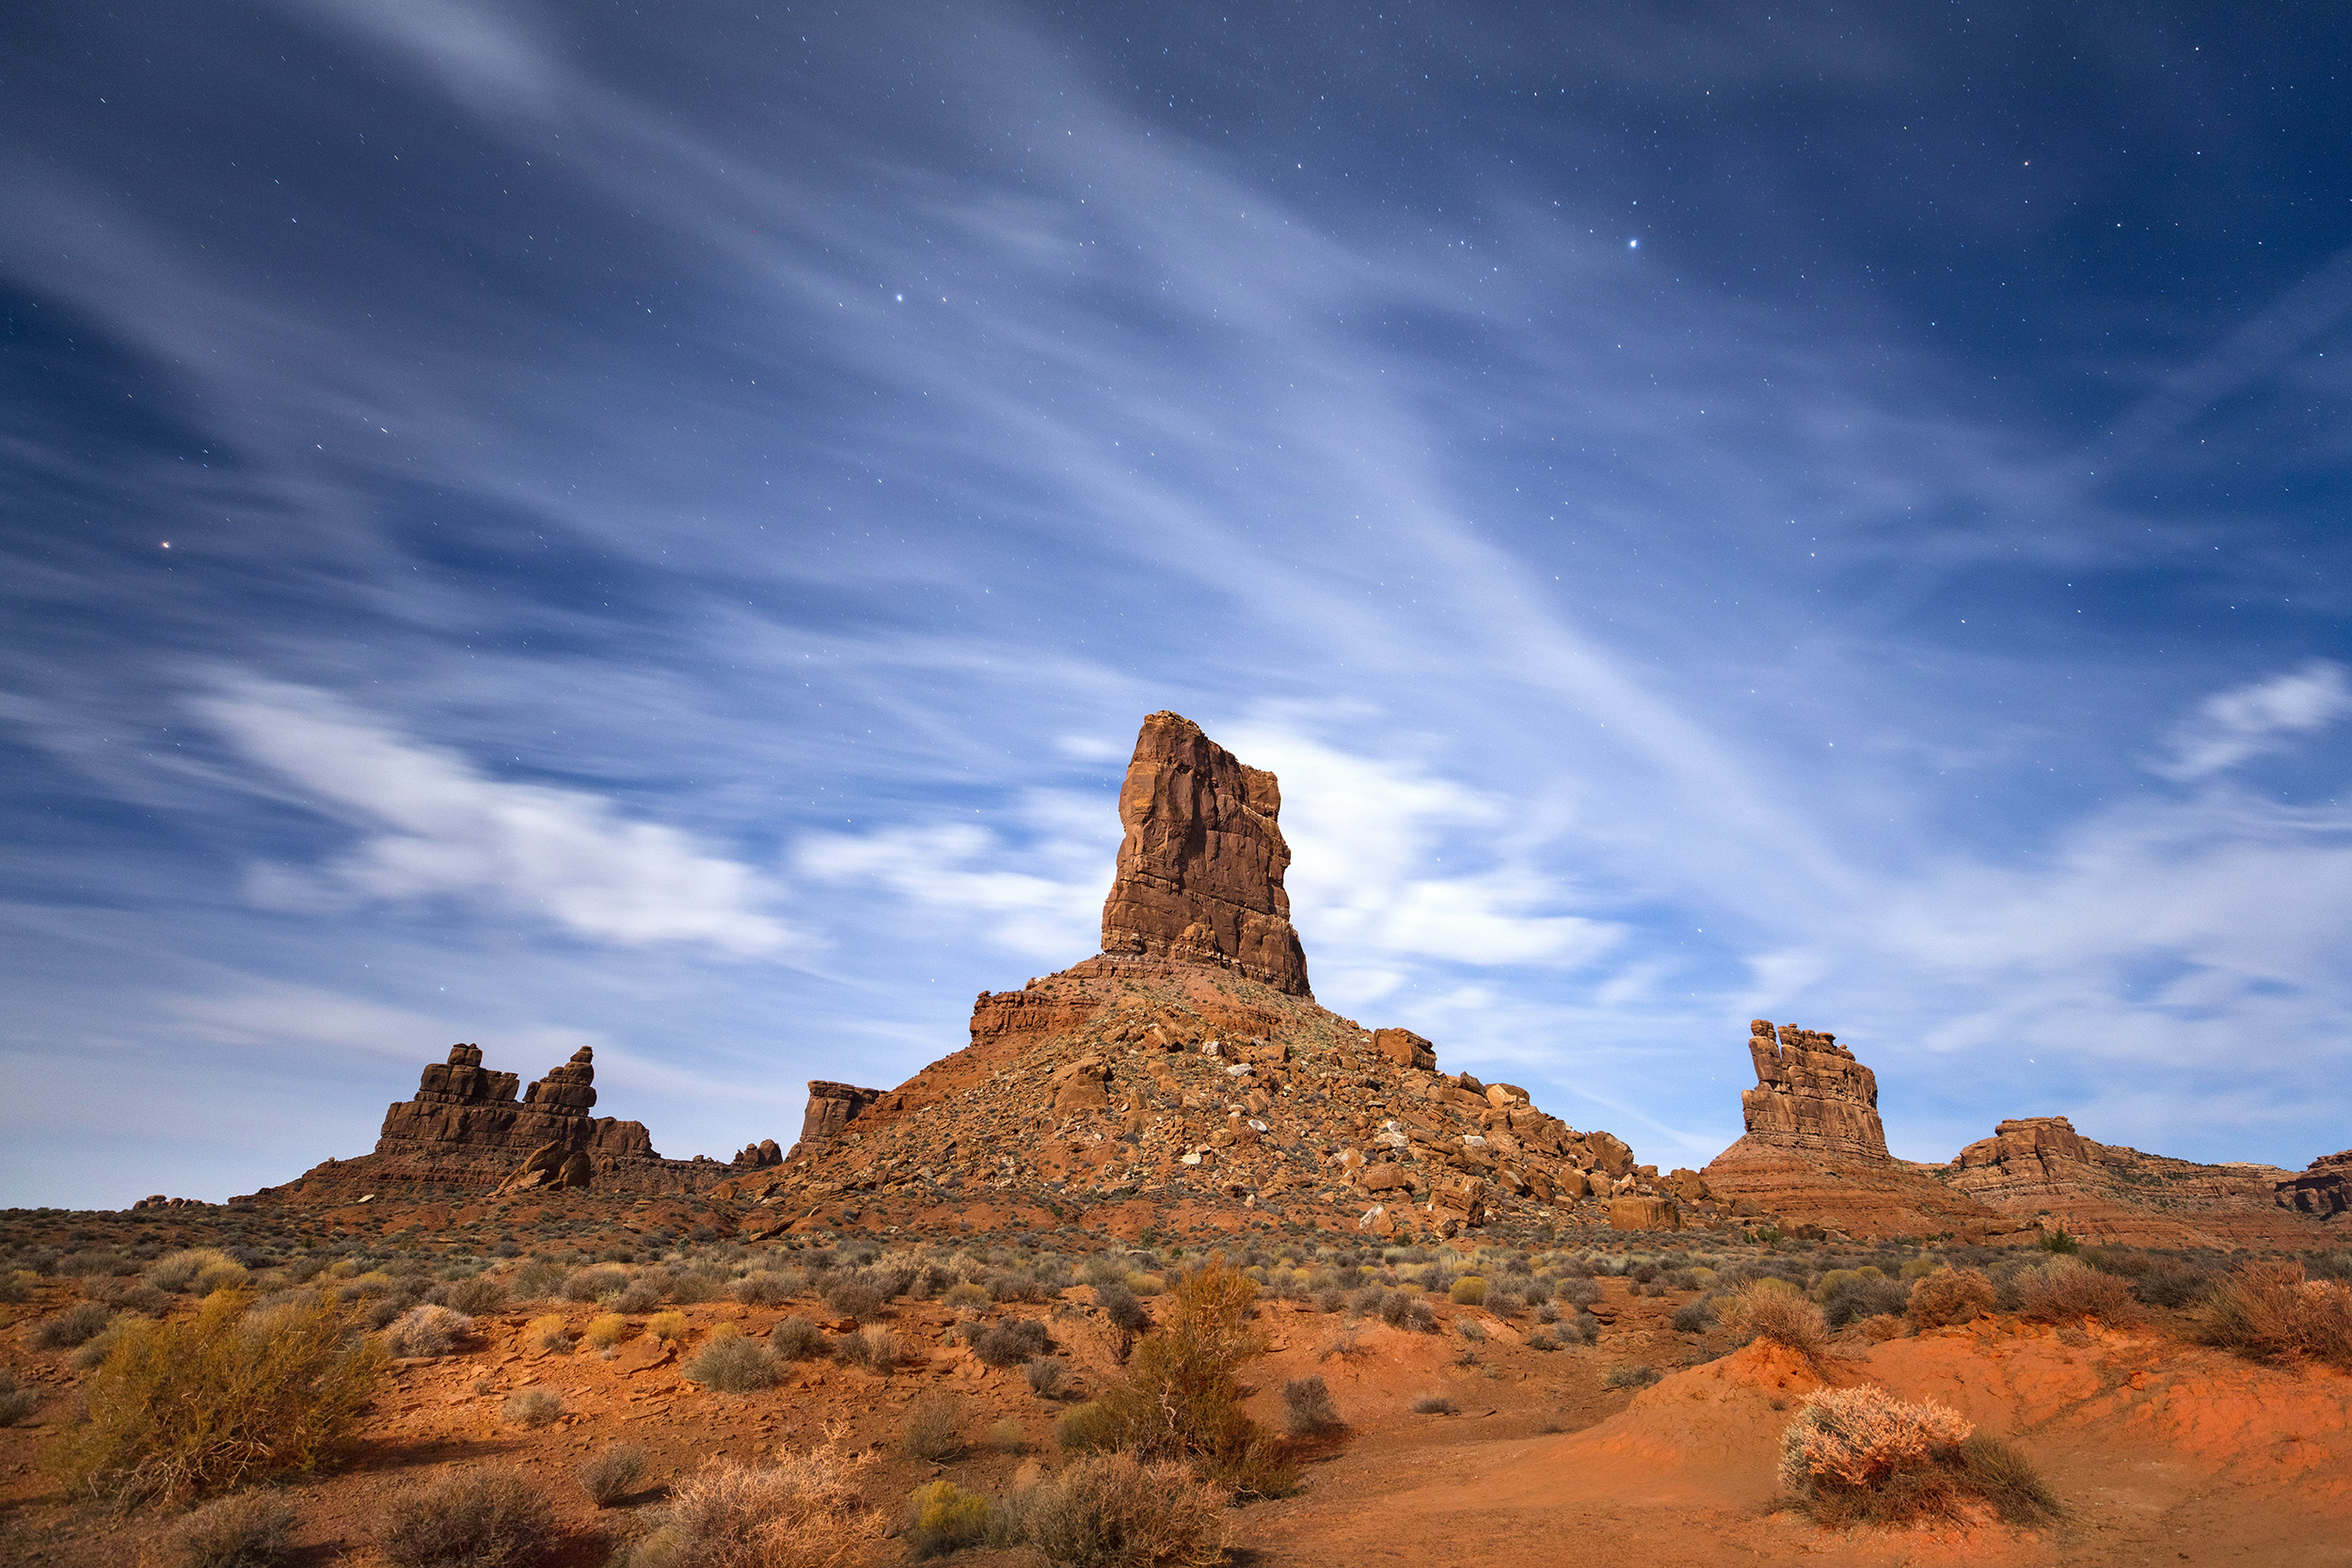 Image: Sandstone buttes rise from the Valley of the Gods under a full moon in Bears Ears National Monument